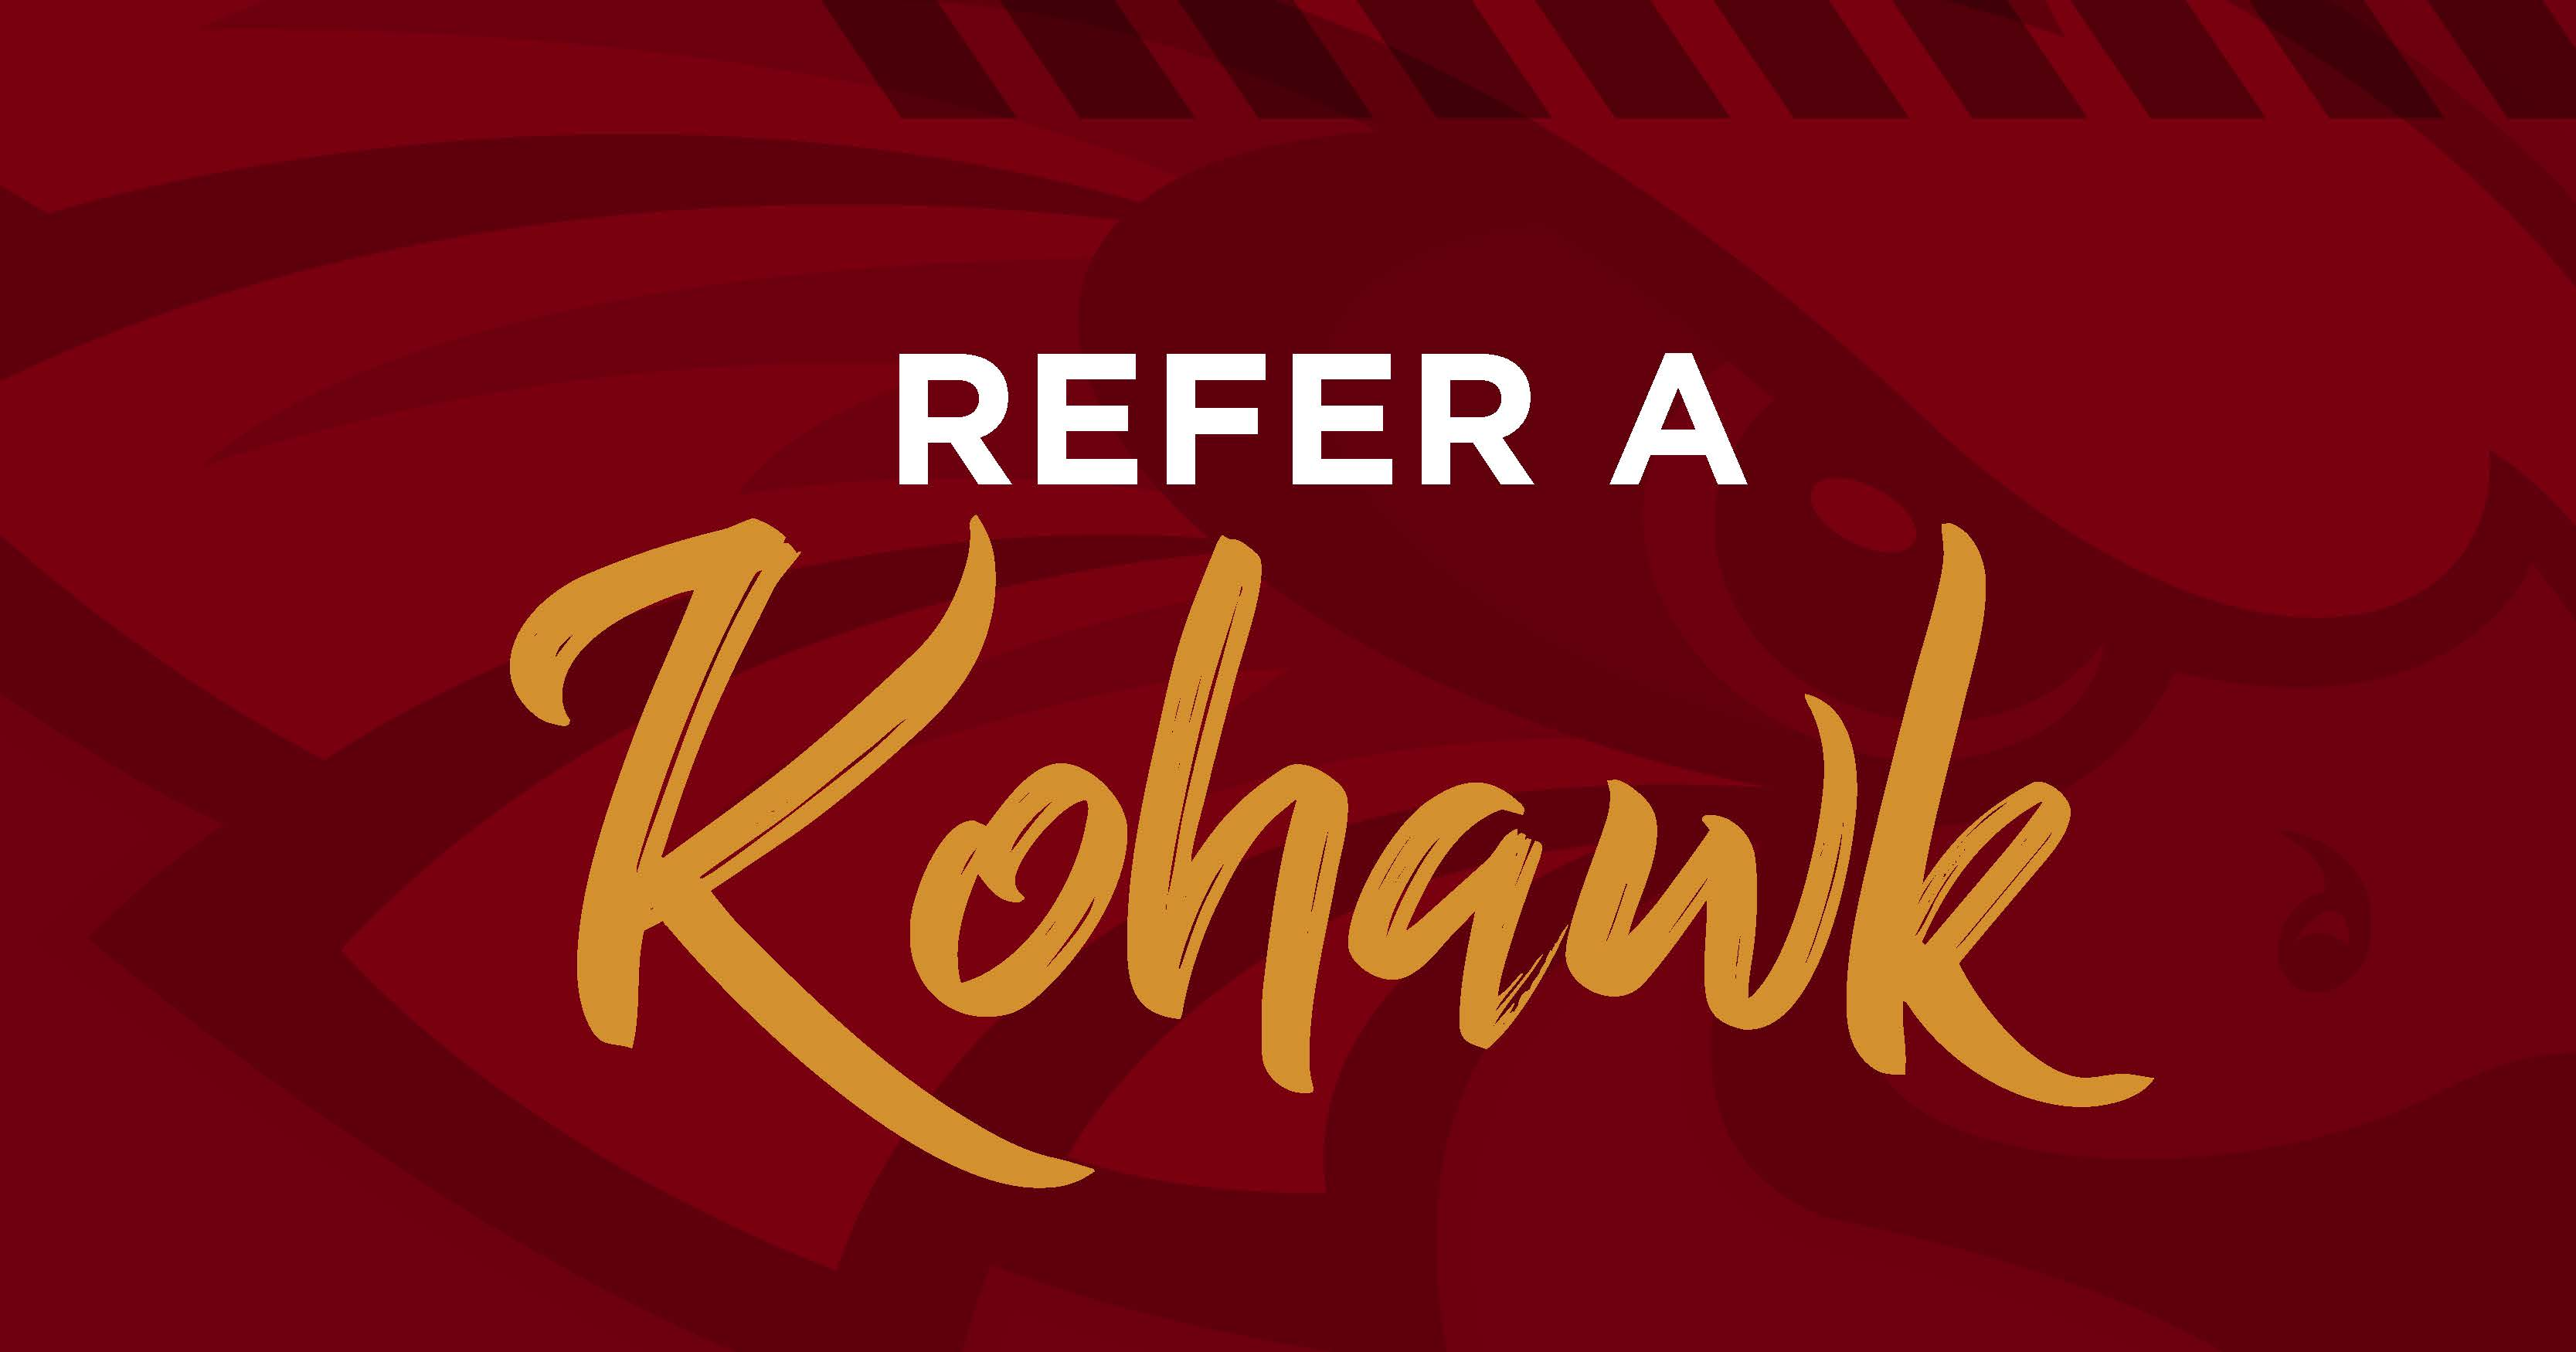 Refer a Kohawk